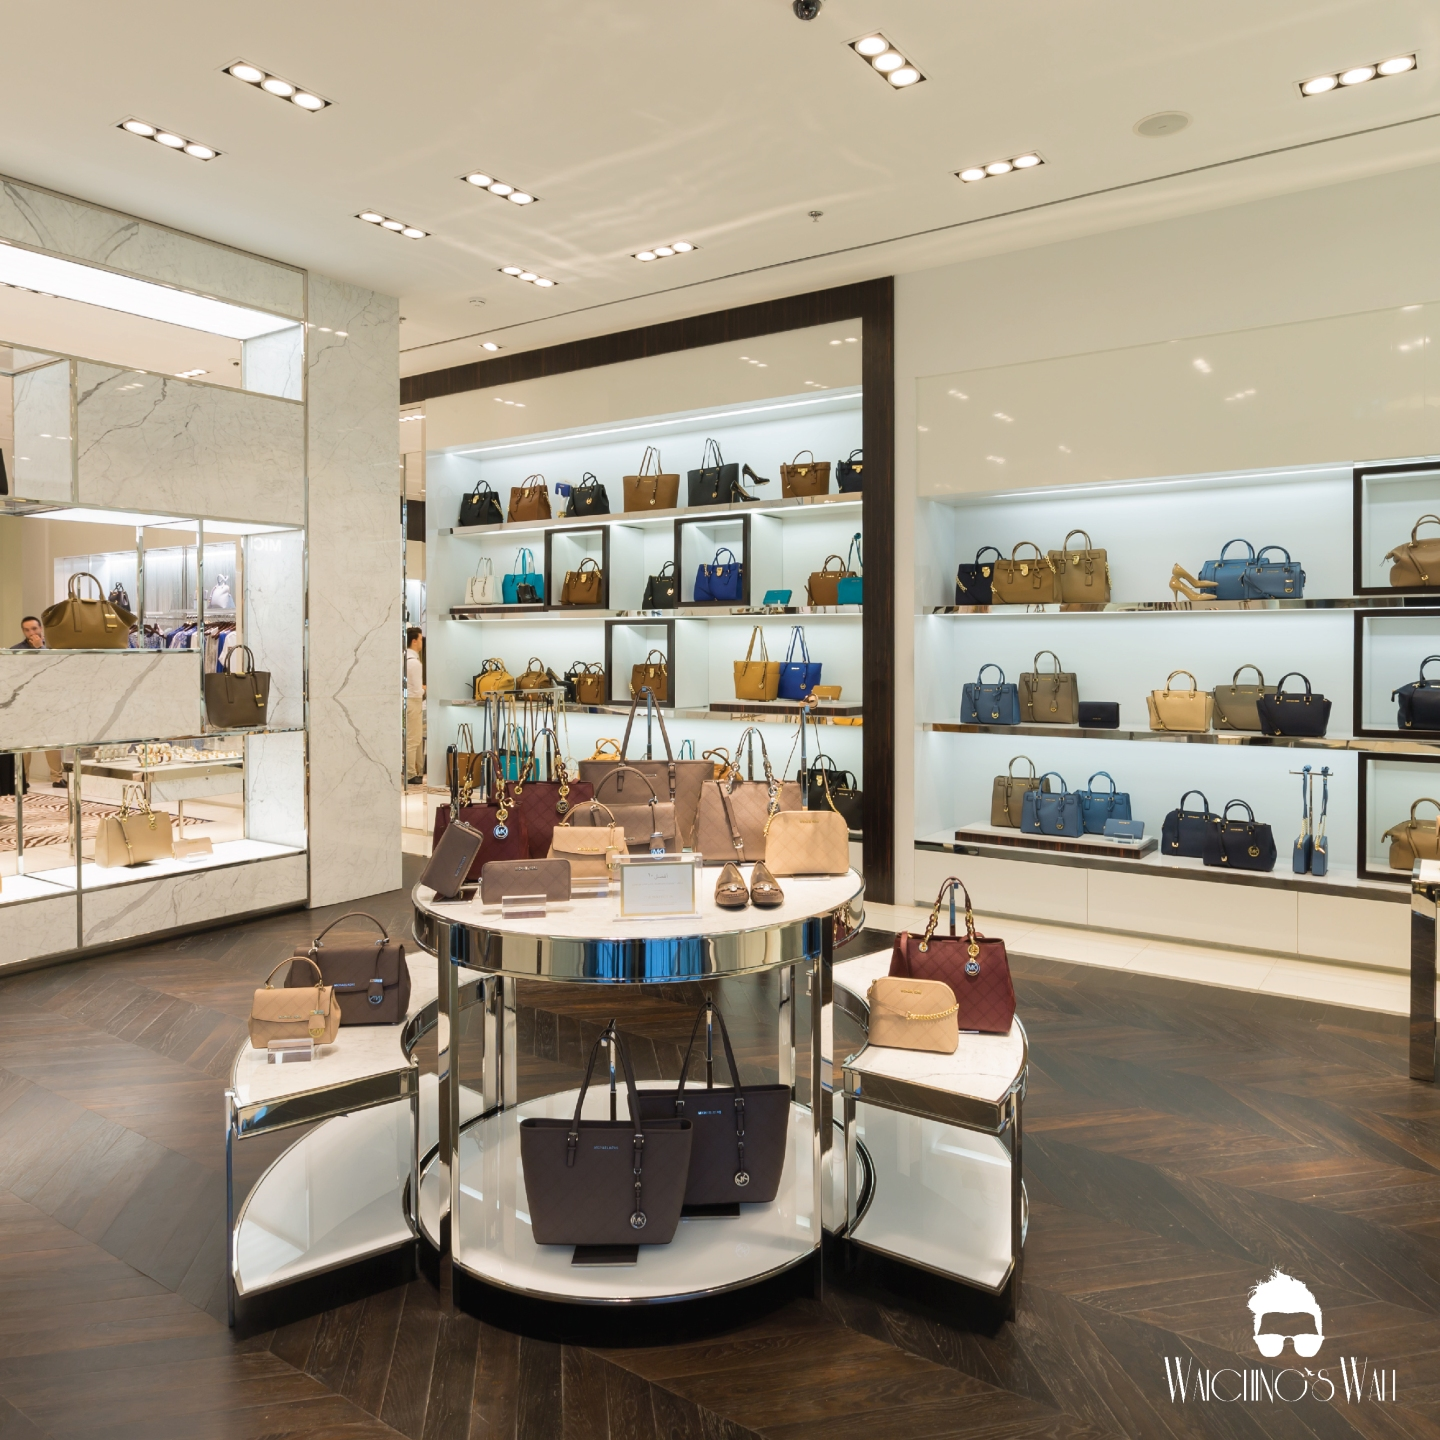 Michael Kors_Waichings Wall-09